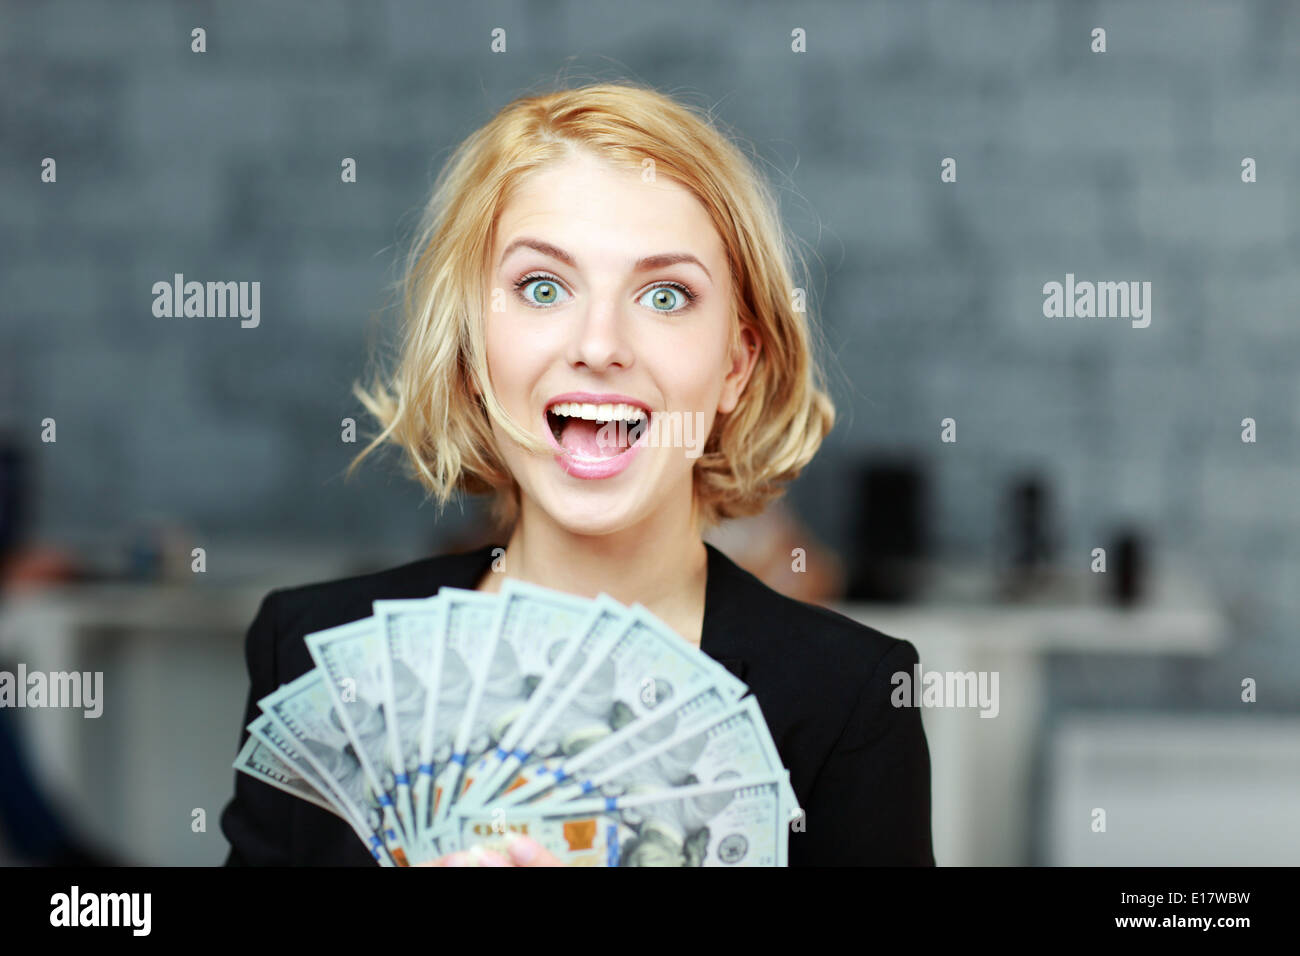 Young businesswoman holding money with delight - Stock Image